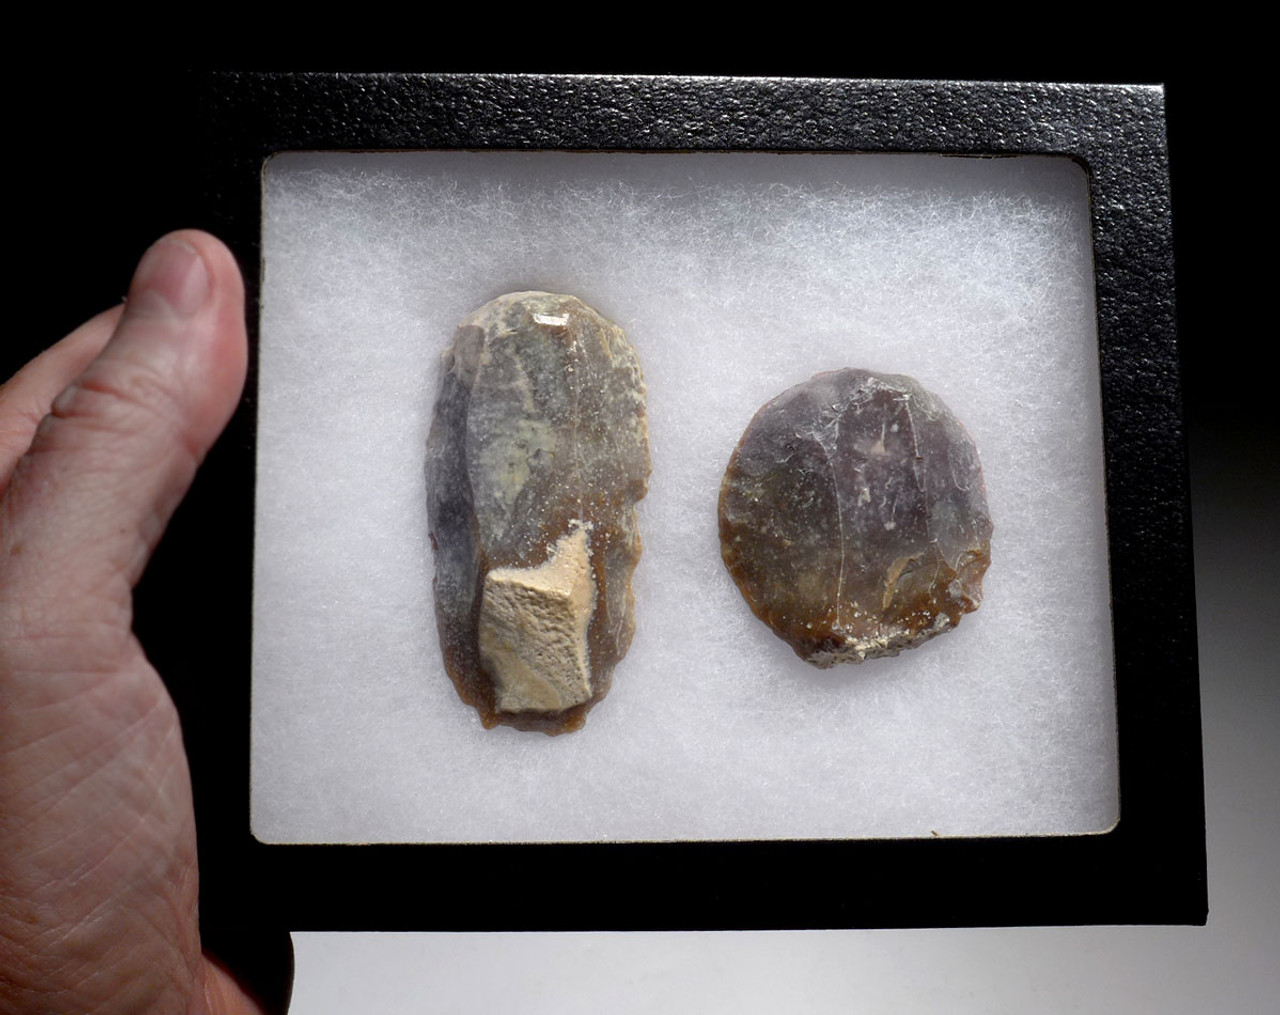 FINEST END AND DISCOIDAL SCRAPERS FROM THE AFRICAN NEOLITHIC CAPSIAN CULTURE *CAP225